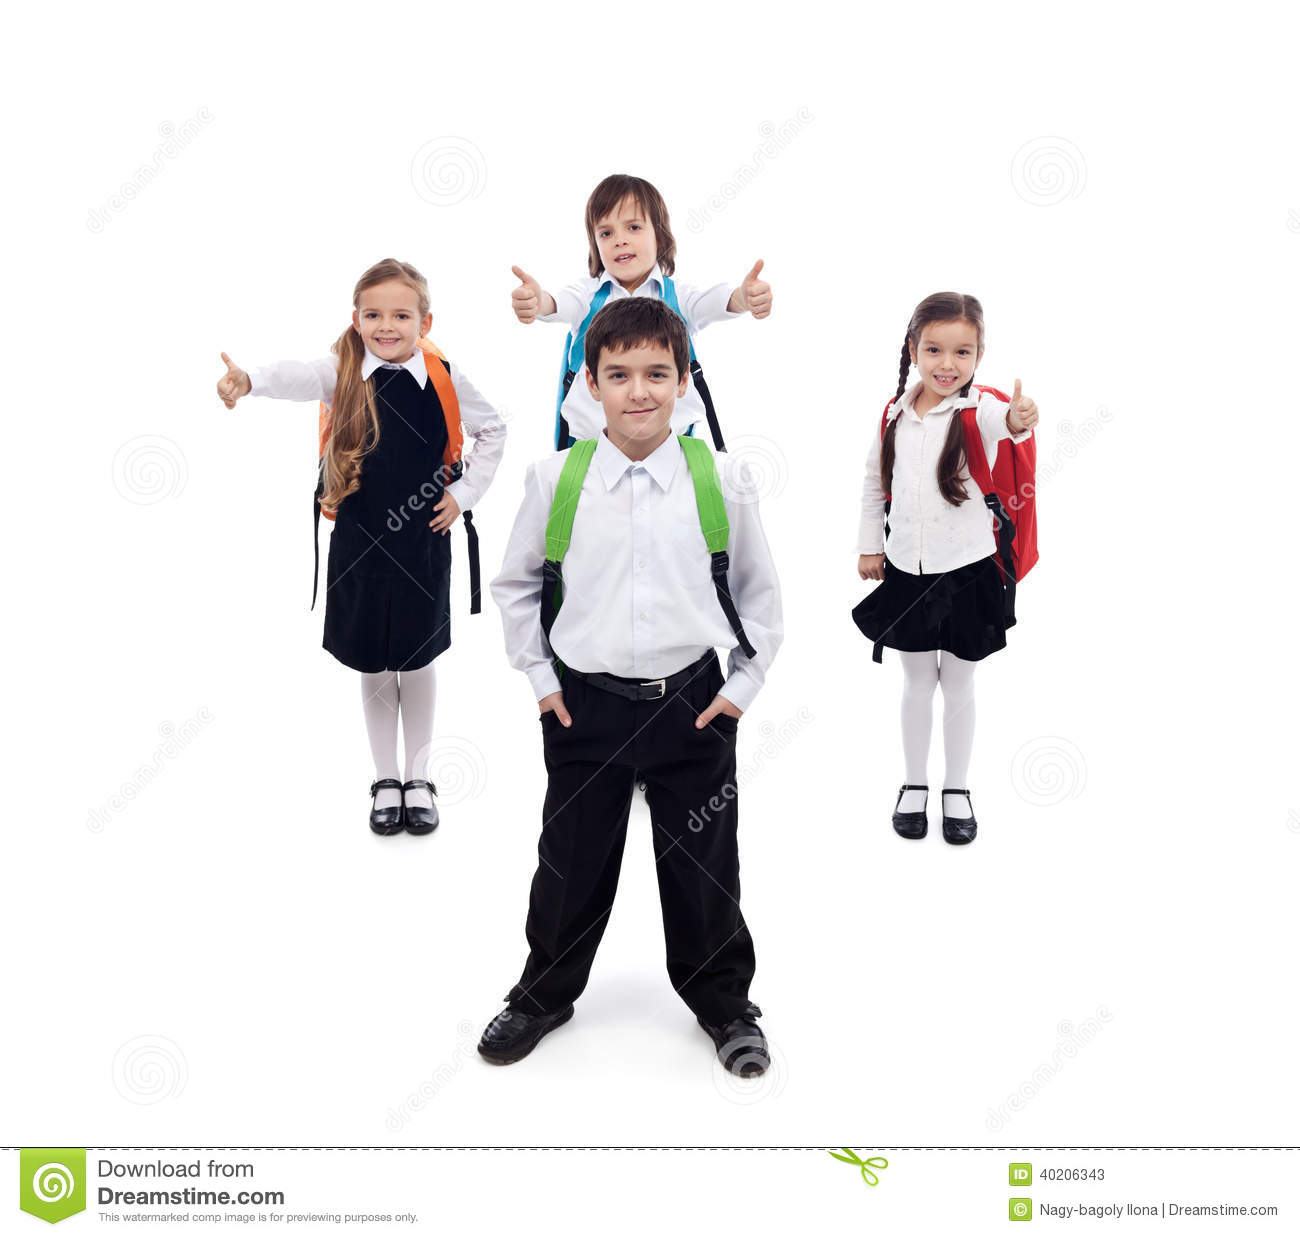 back to school concept with happy and cool kids stock kids holding hands clip art border Girls Holding Hands Clip Art